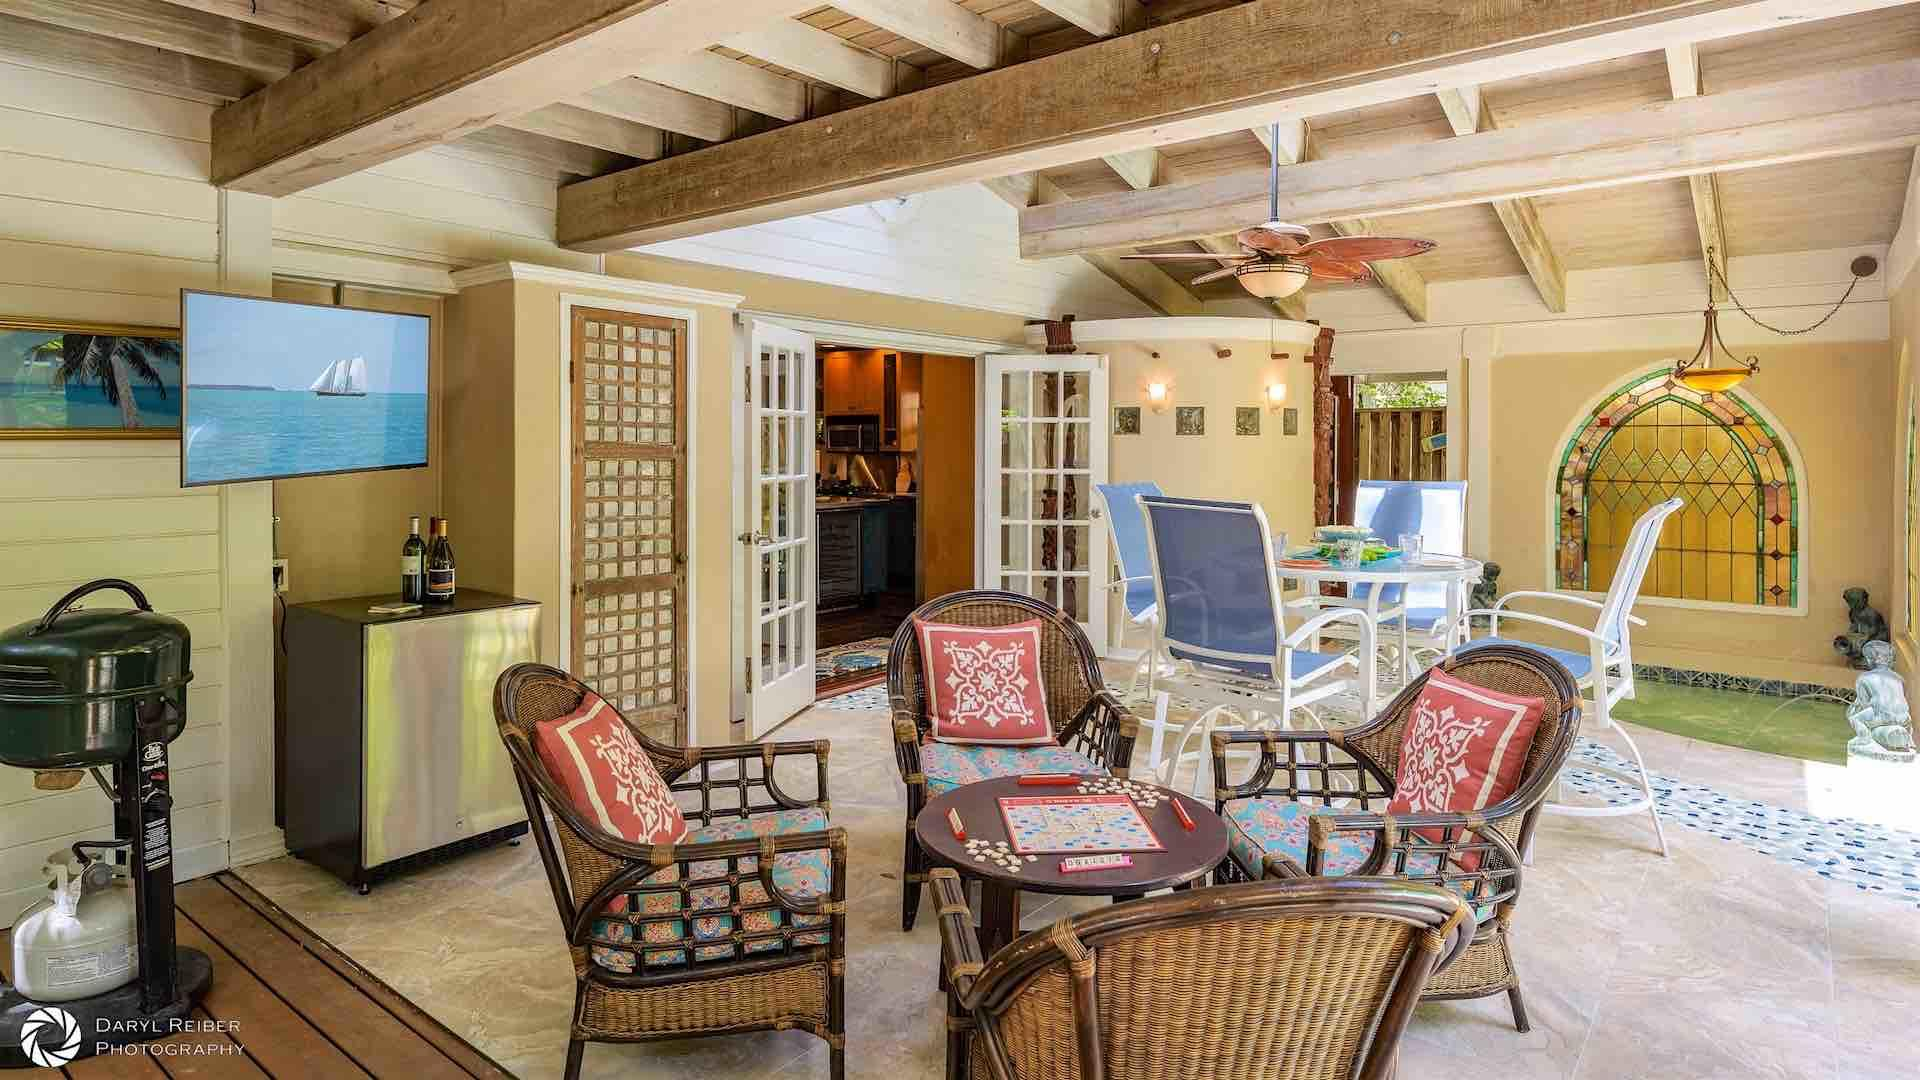 The covered lanai has both outdoor dining and seating areas and a flat screen TV...